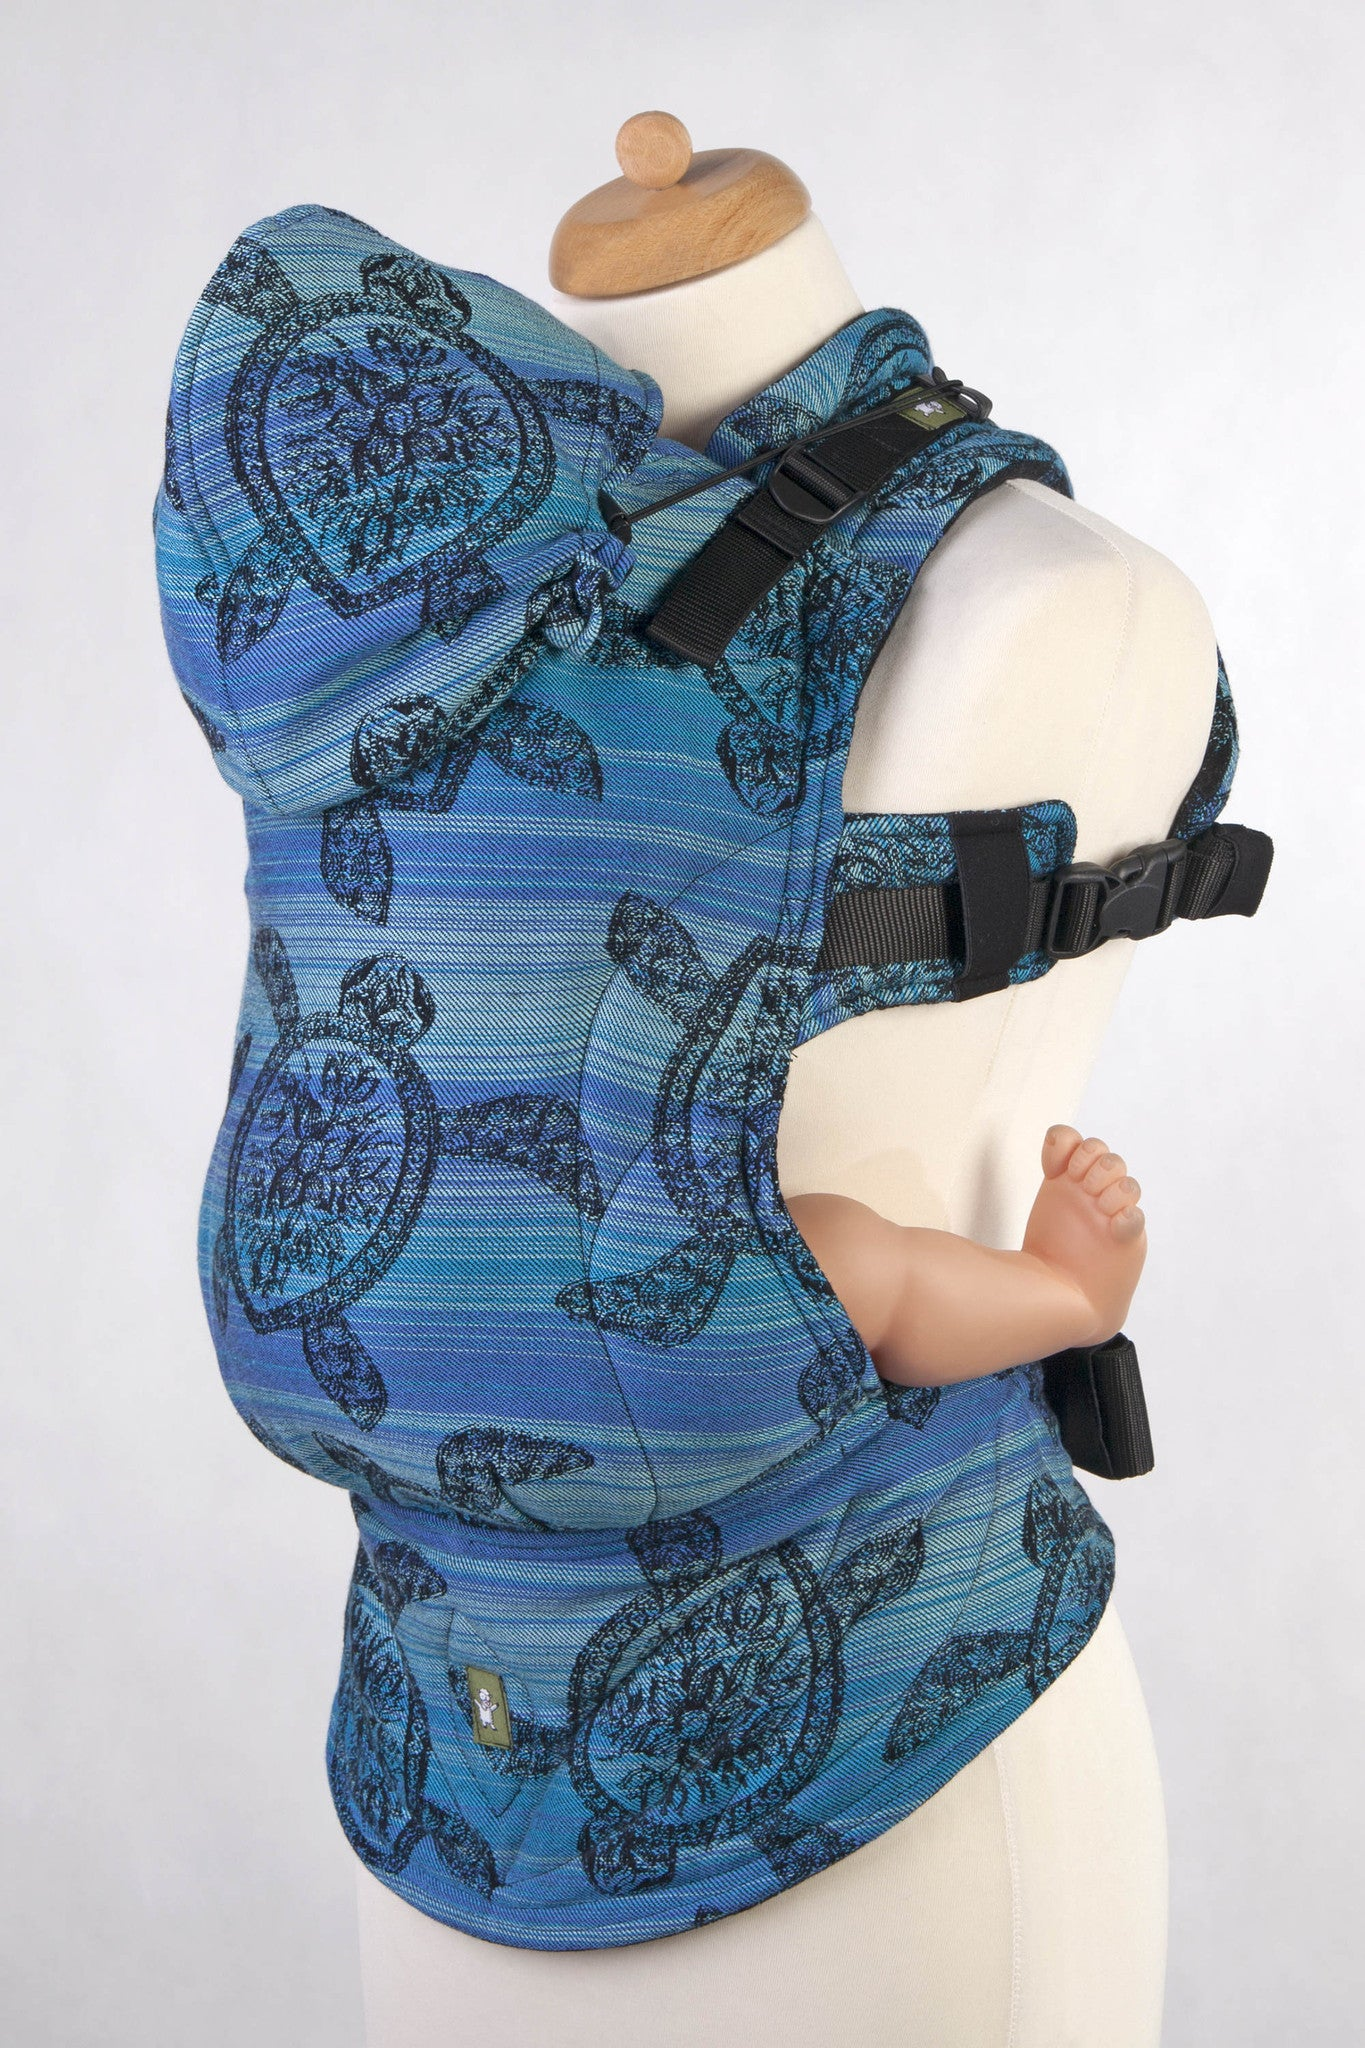 ERGONOMIC CARRIER BABY SIZE JACQUARD WEAVE COTTON WRAP CONVERSION FROM SEA